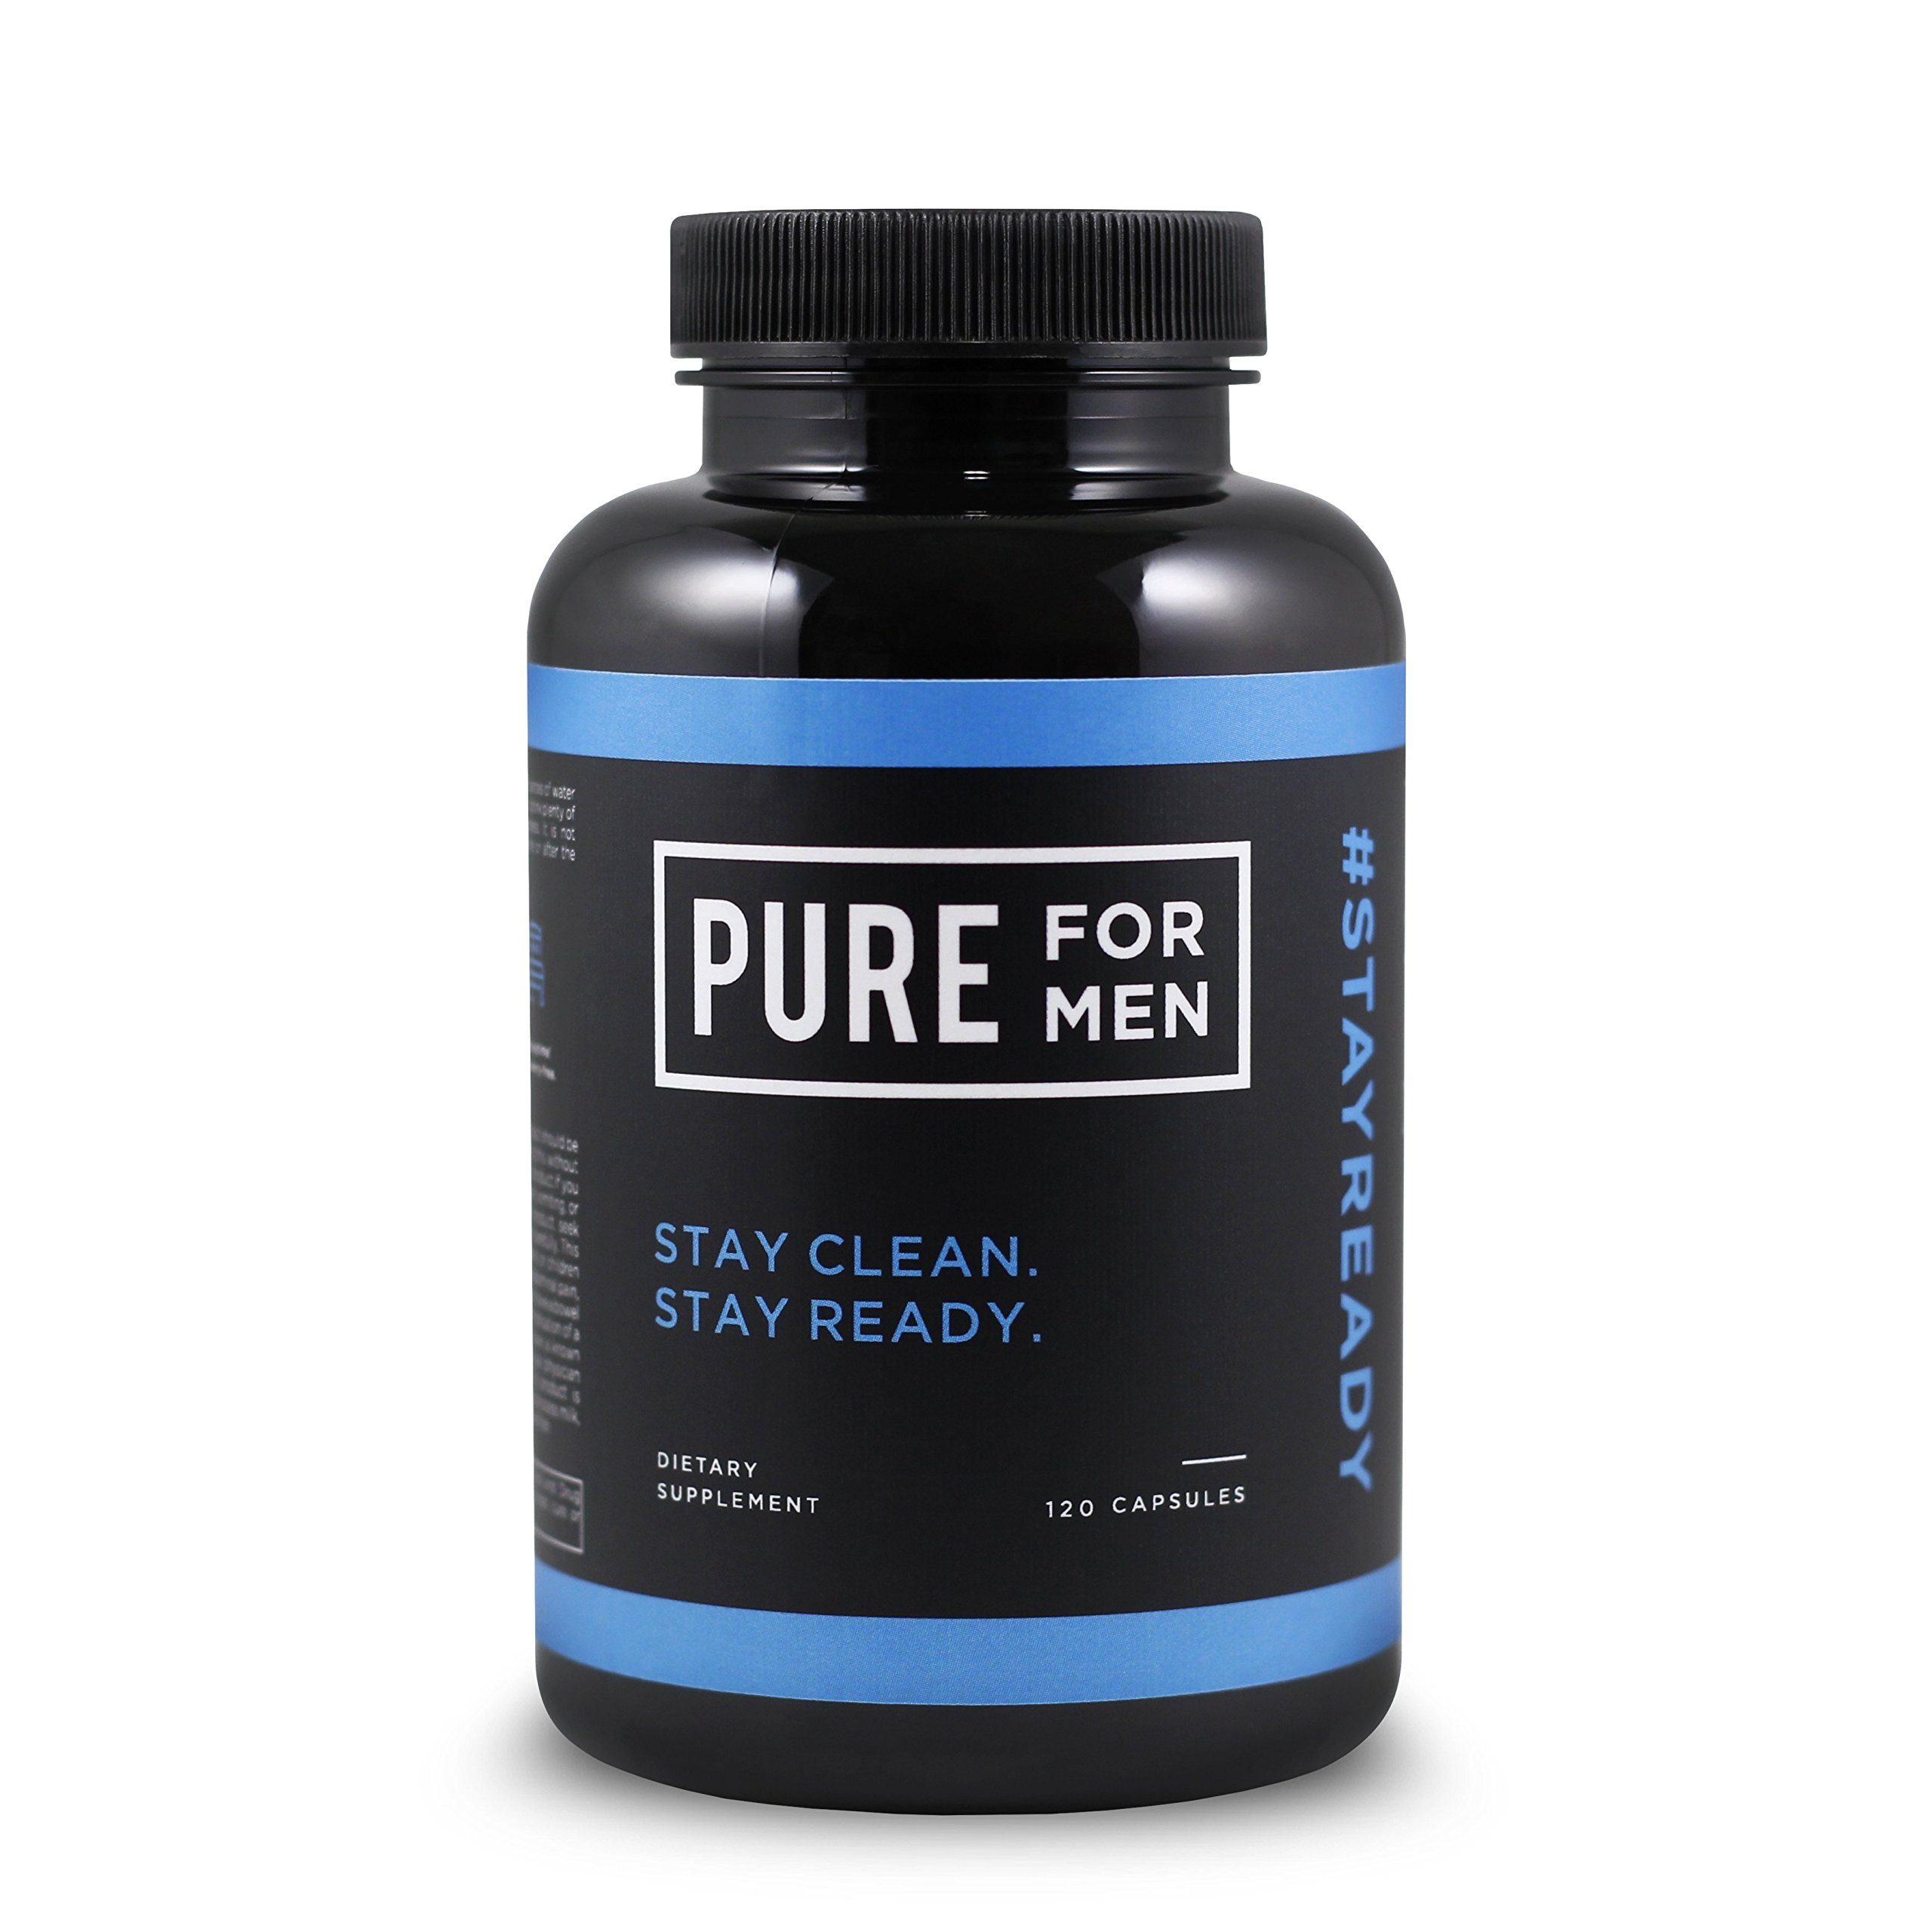 Pure for Men - The Original Vegan Cleanliness Fiber Supplement - Proven Proprietary Formula (120 Capsules with Aloe) by Pure for Men